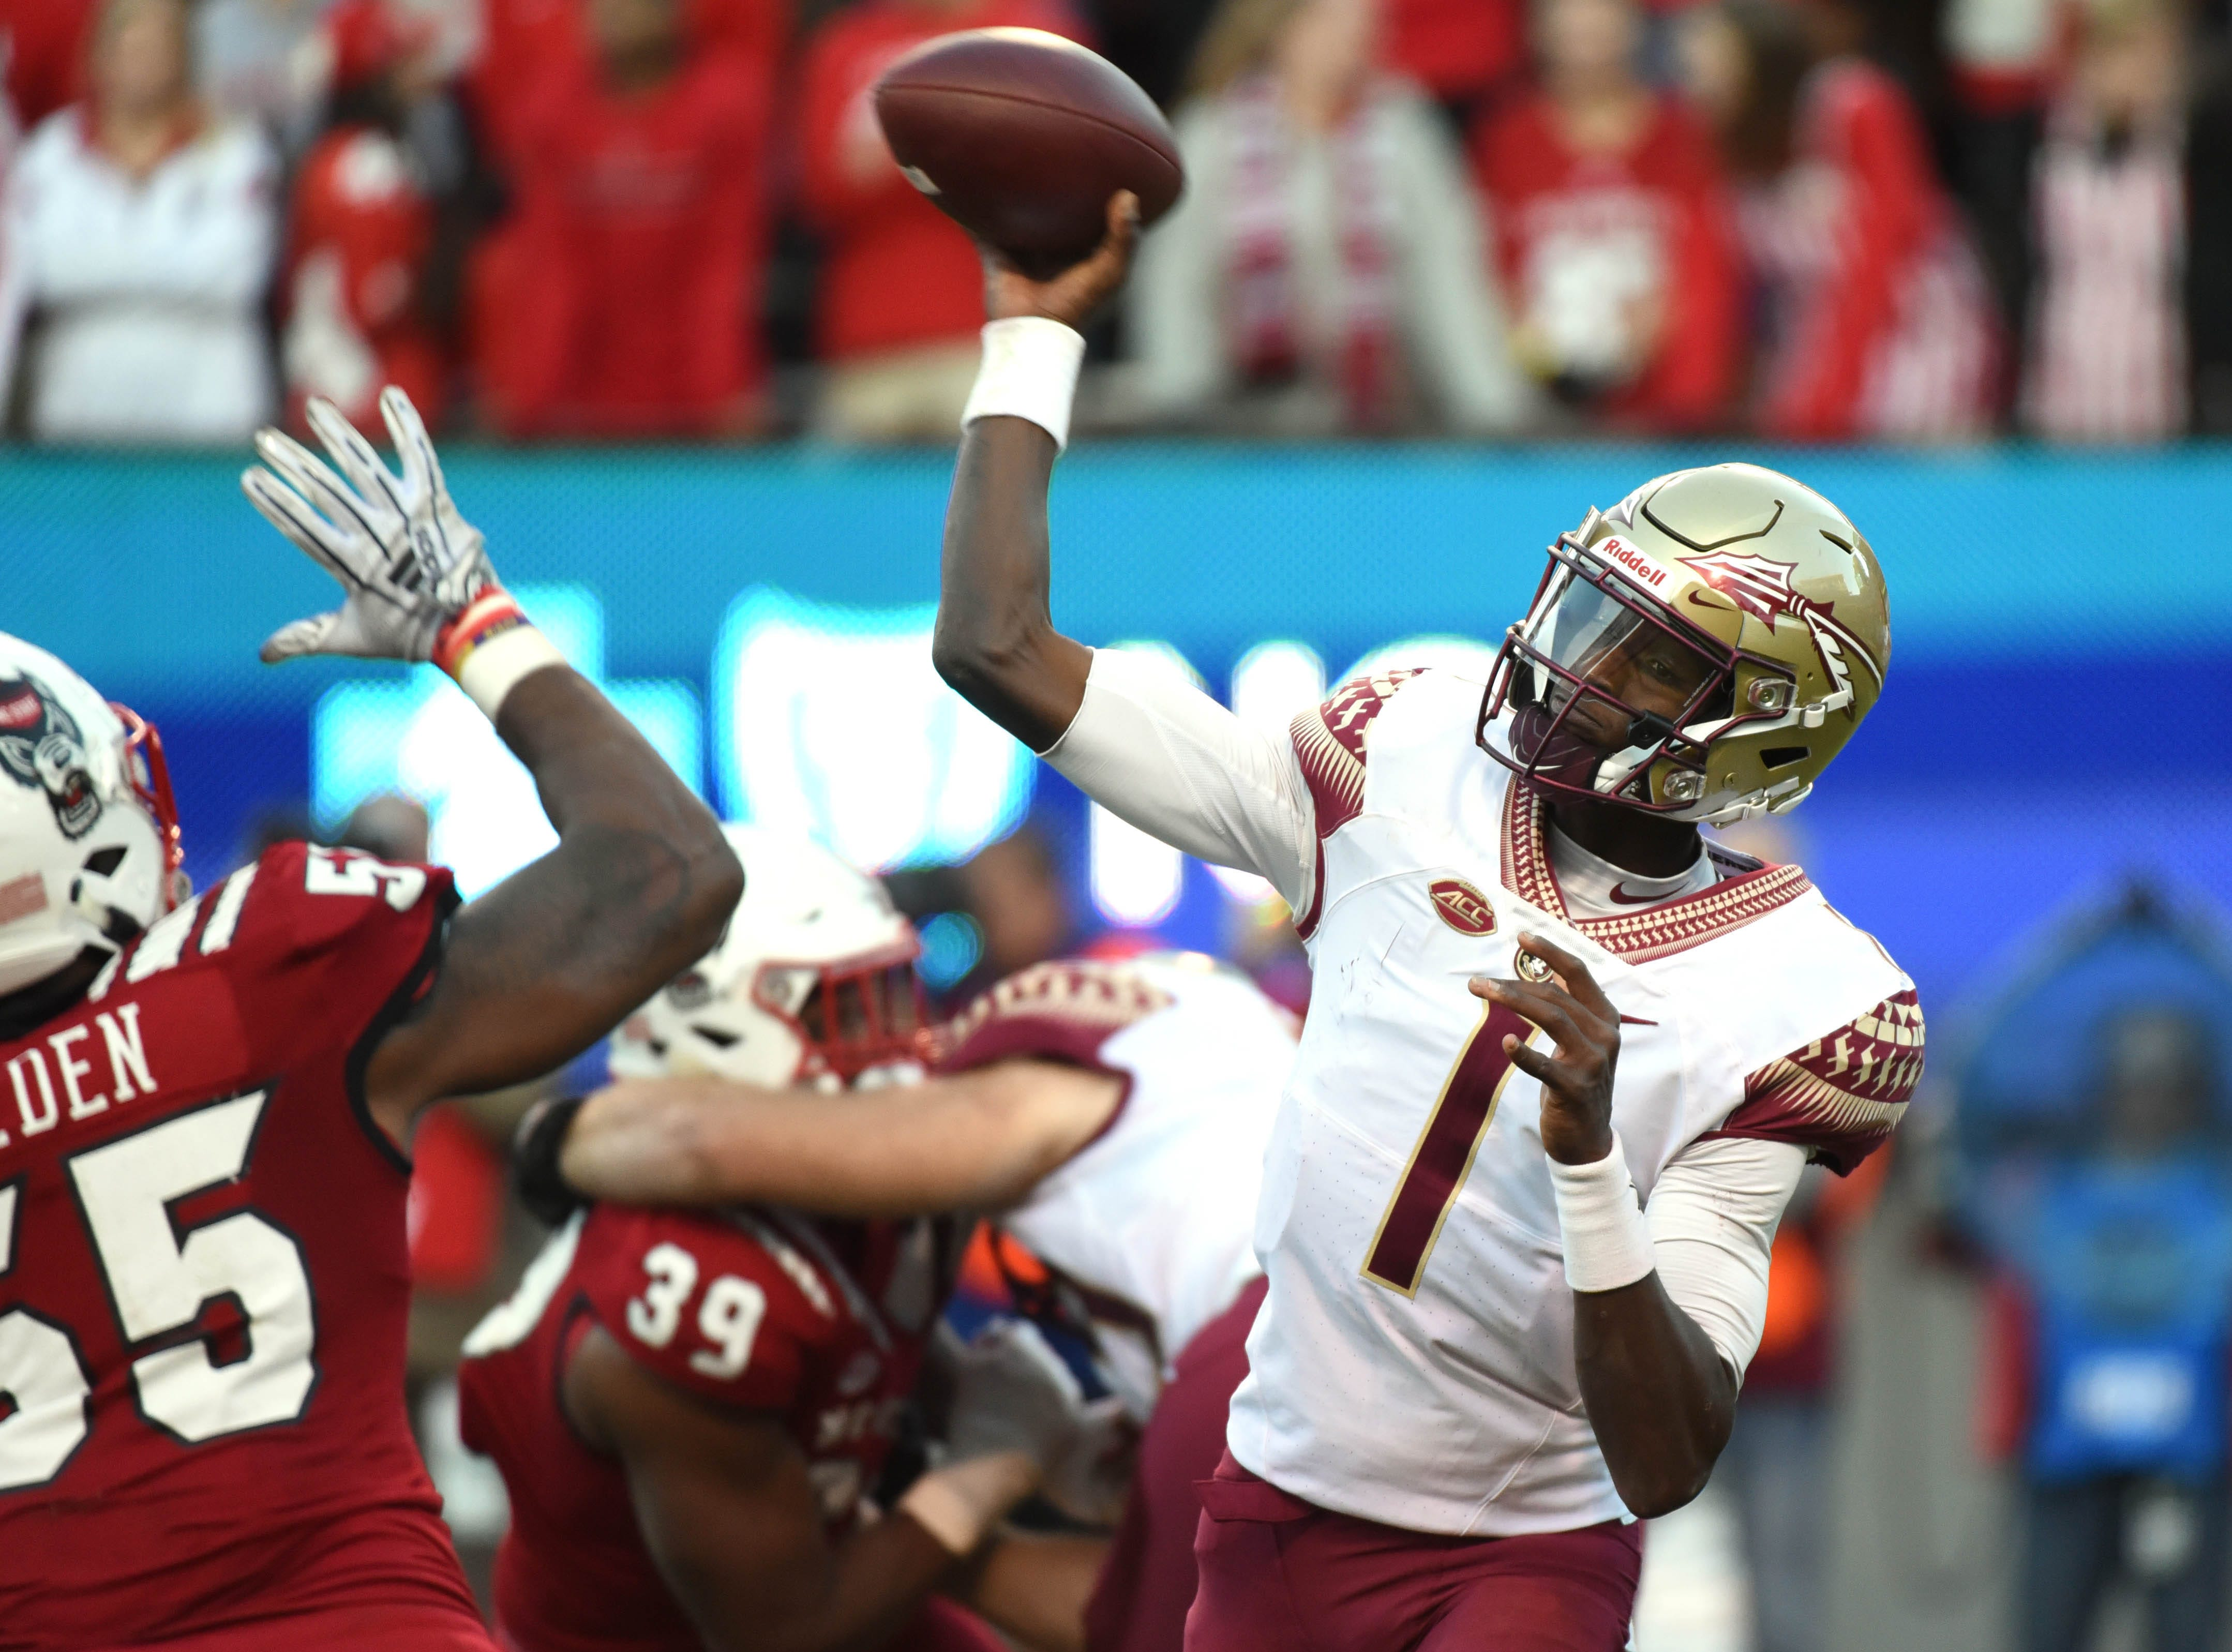 Nov 3, 2018; Raleigh, NC, USA; Florida State Seminoles quarterback james Blackman (1) throws a pass during the second half against the North Carolina State Wolfpack at Carter-Finley Stadium.  The Wolfpack won 47-28.  Mandatory Credit: Rob Kinnan-USA TODAY Sports